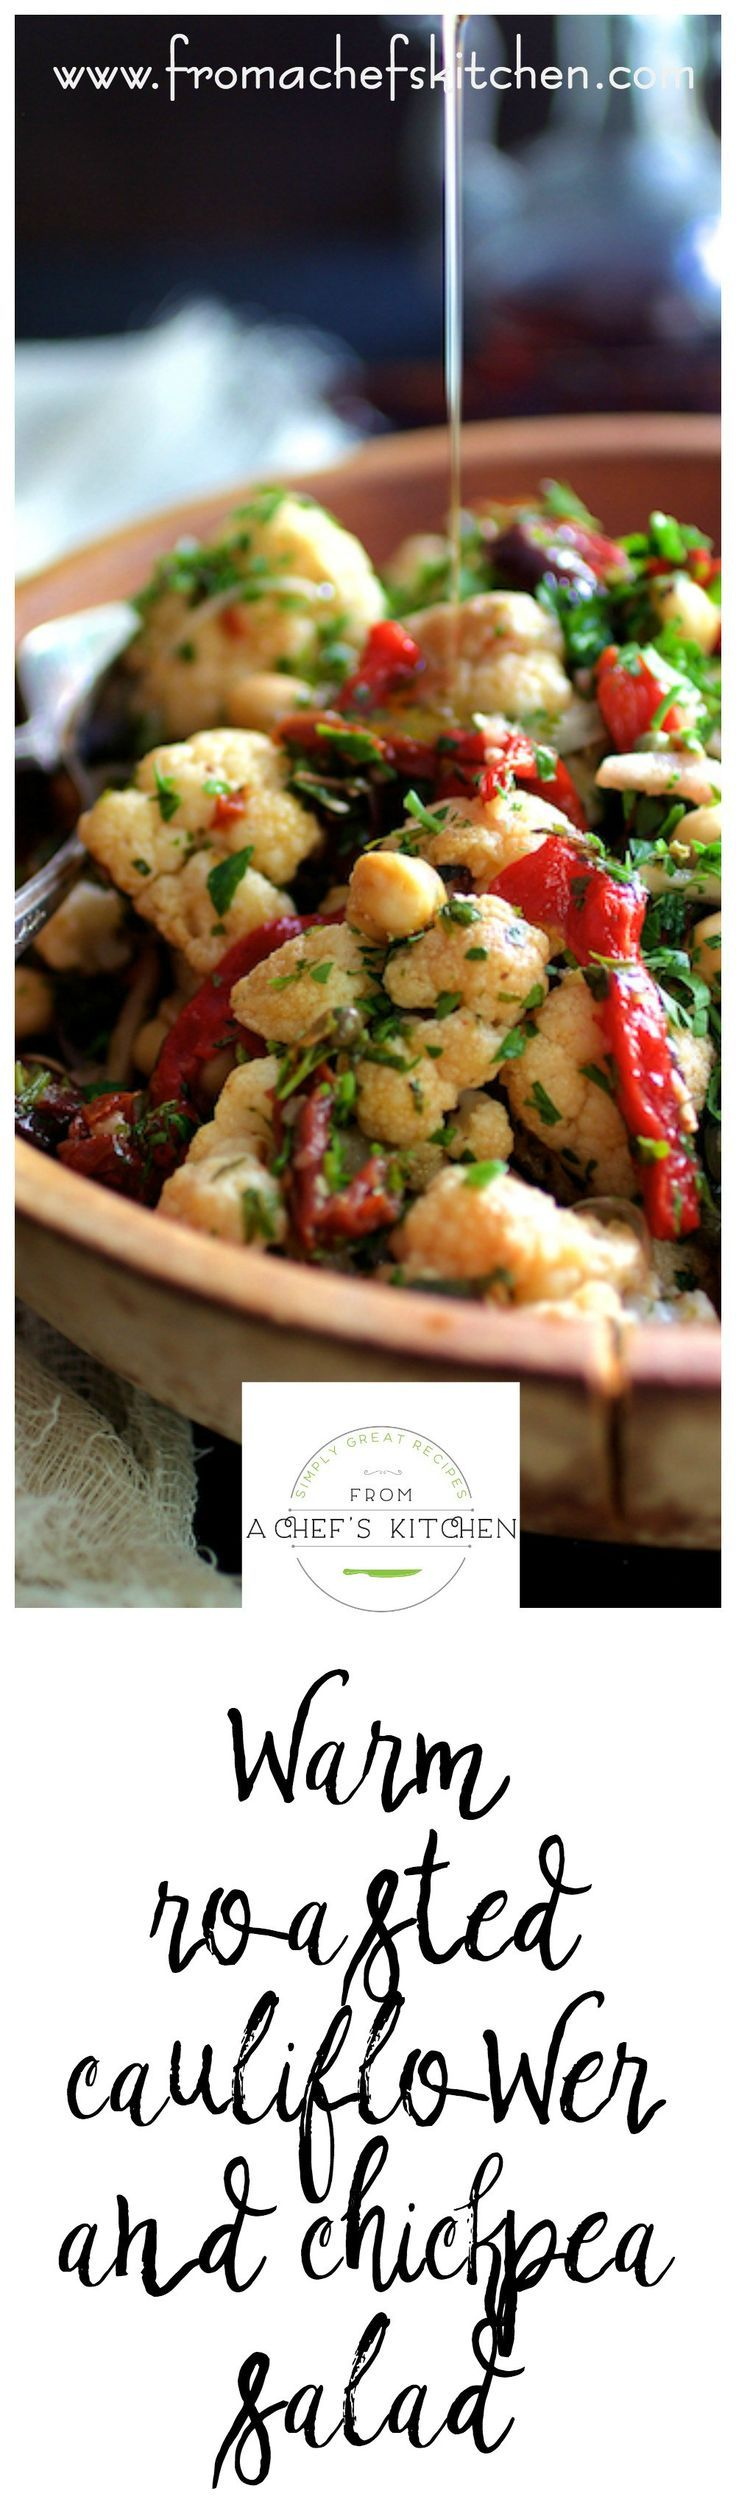 Warm Roasted Cauliflower and Chickpea Salad makes a great vegetarian main course salad for the perfect salad to pair with grilled meat, poultry and seafood.